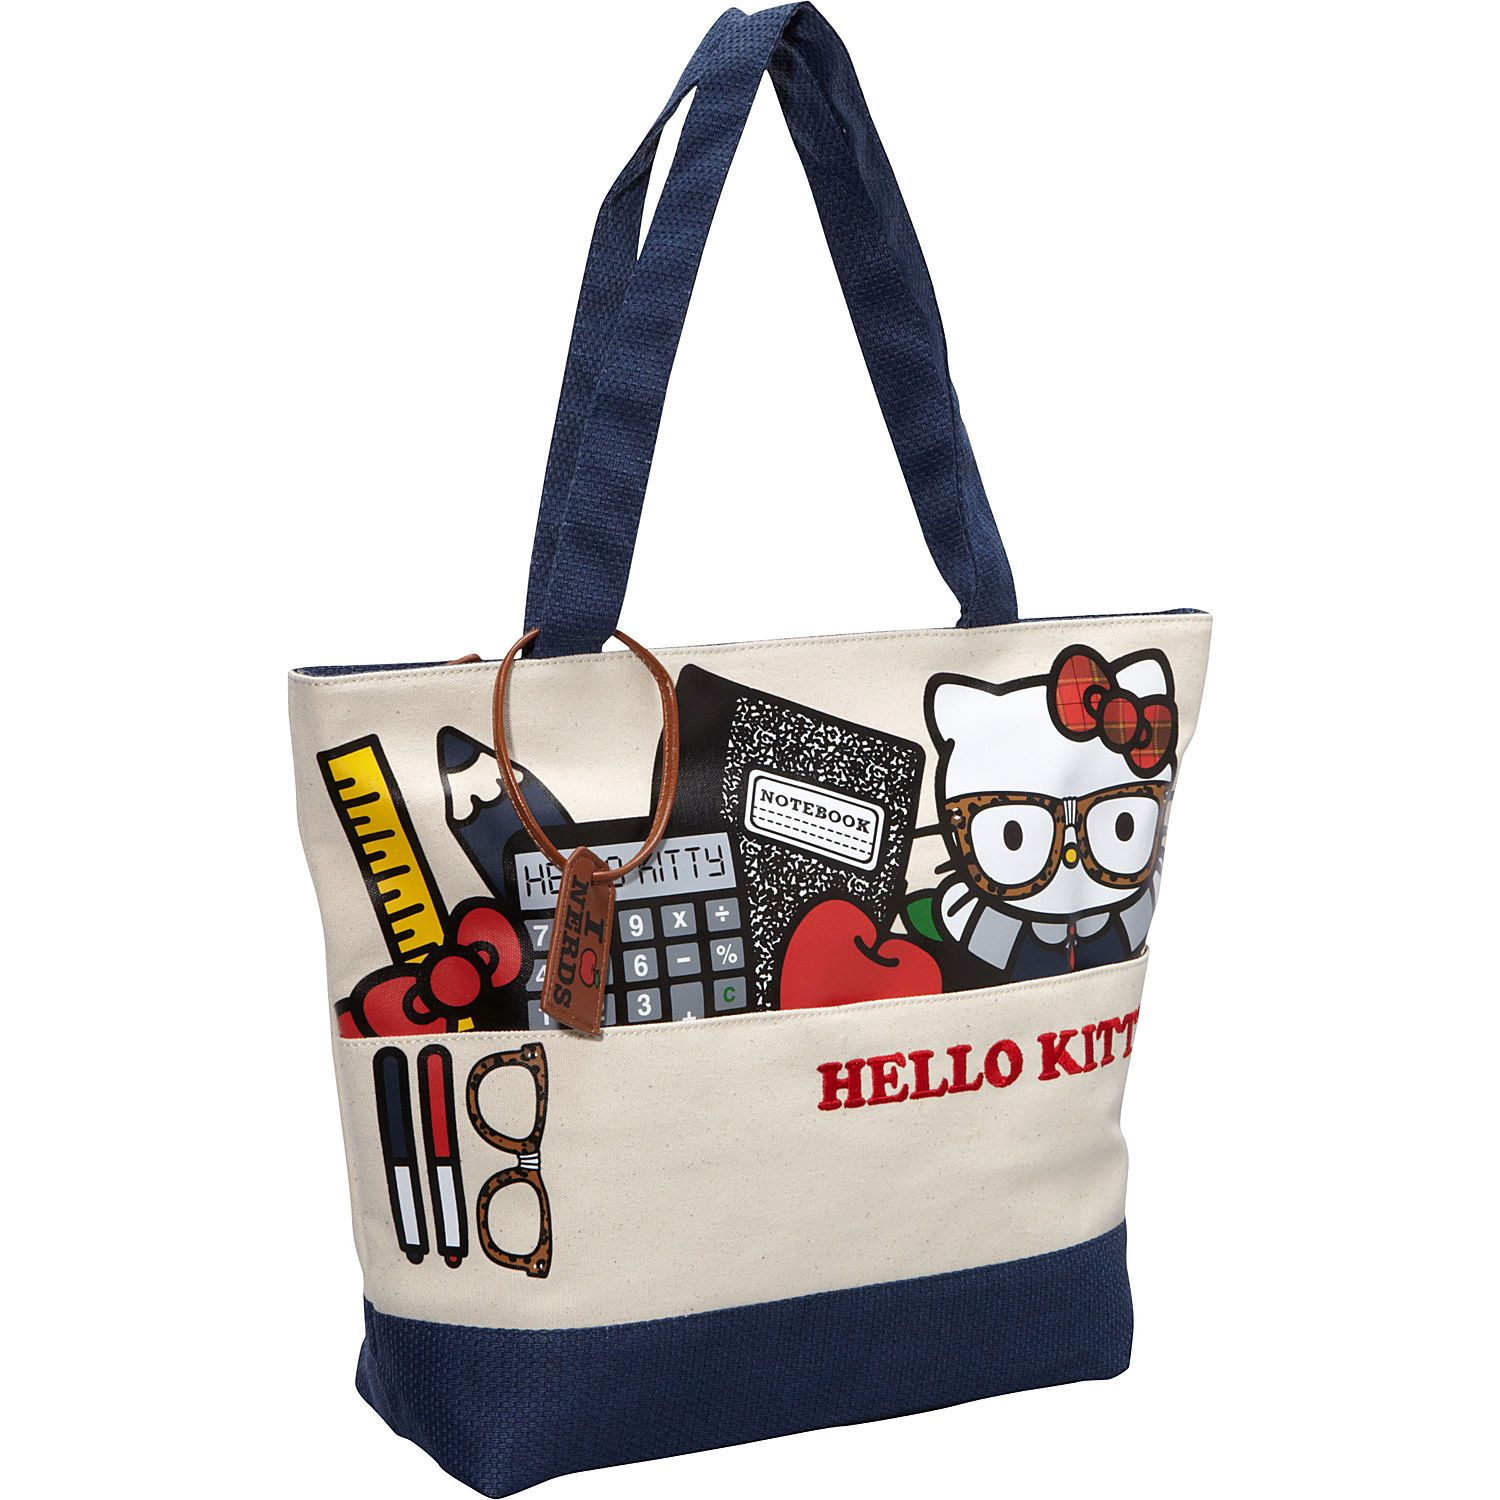 626393309b63 Loungefly Hello Kitty Nerds Stuff Tote - eBags.com